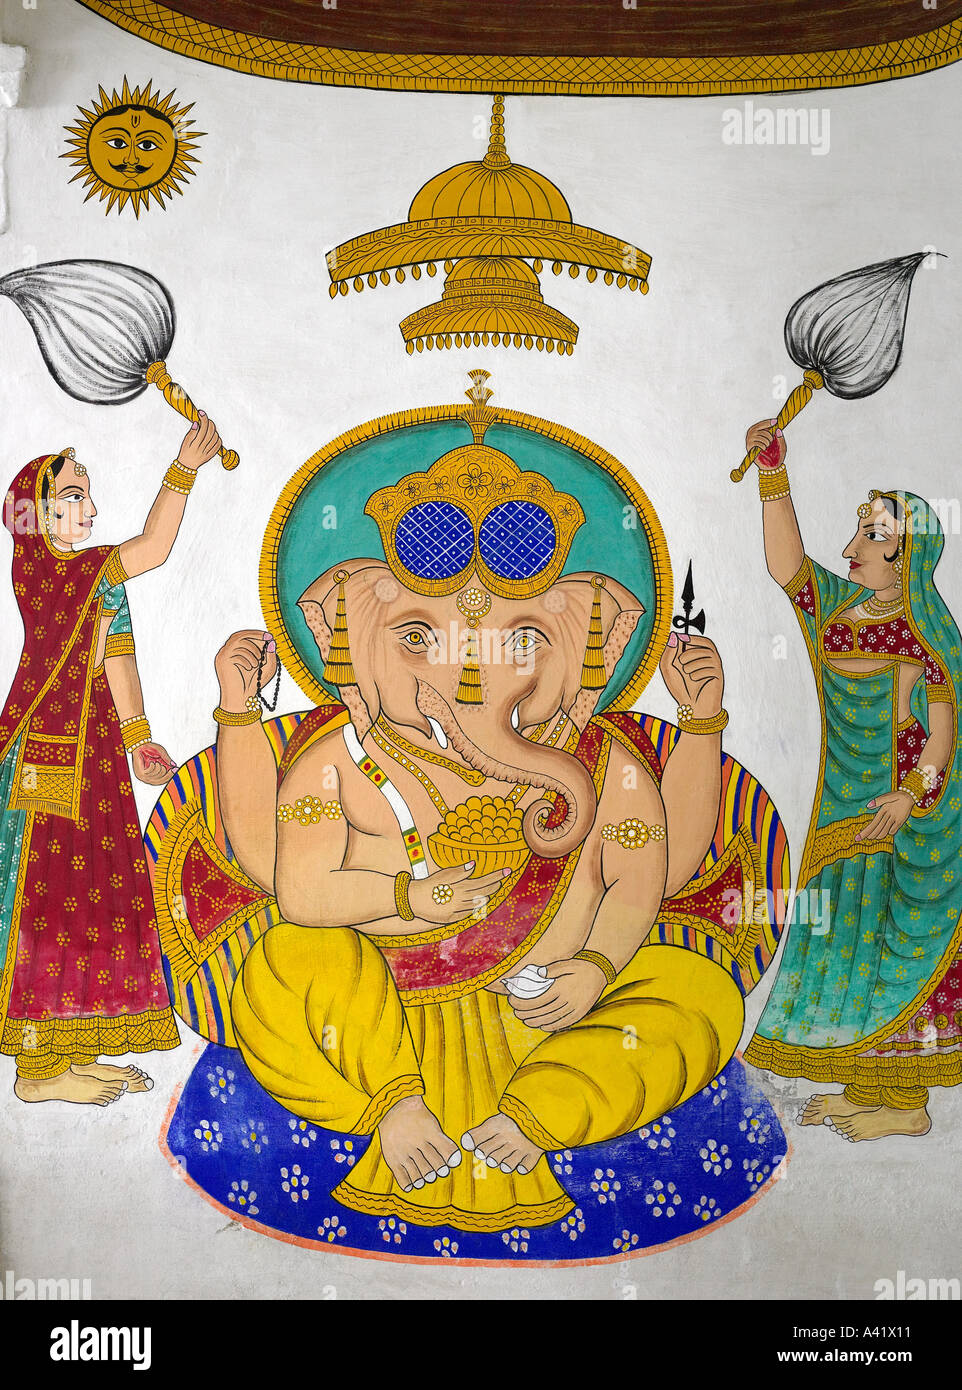 Wall painting of Lord Ganesha in Udaipur in India - Stock Image